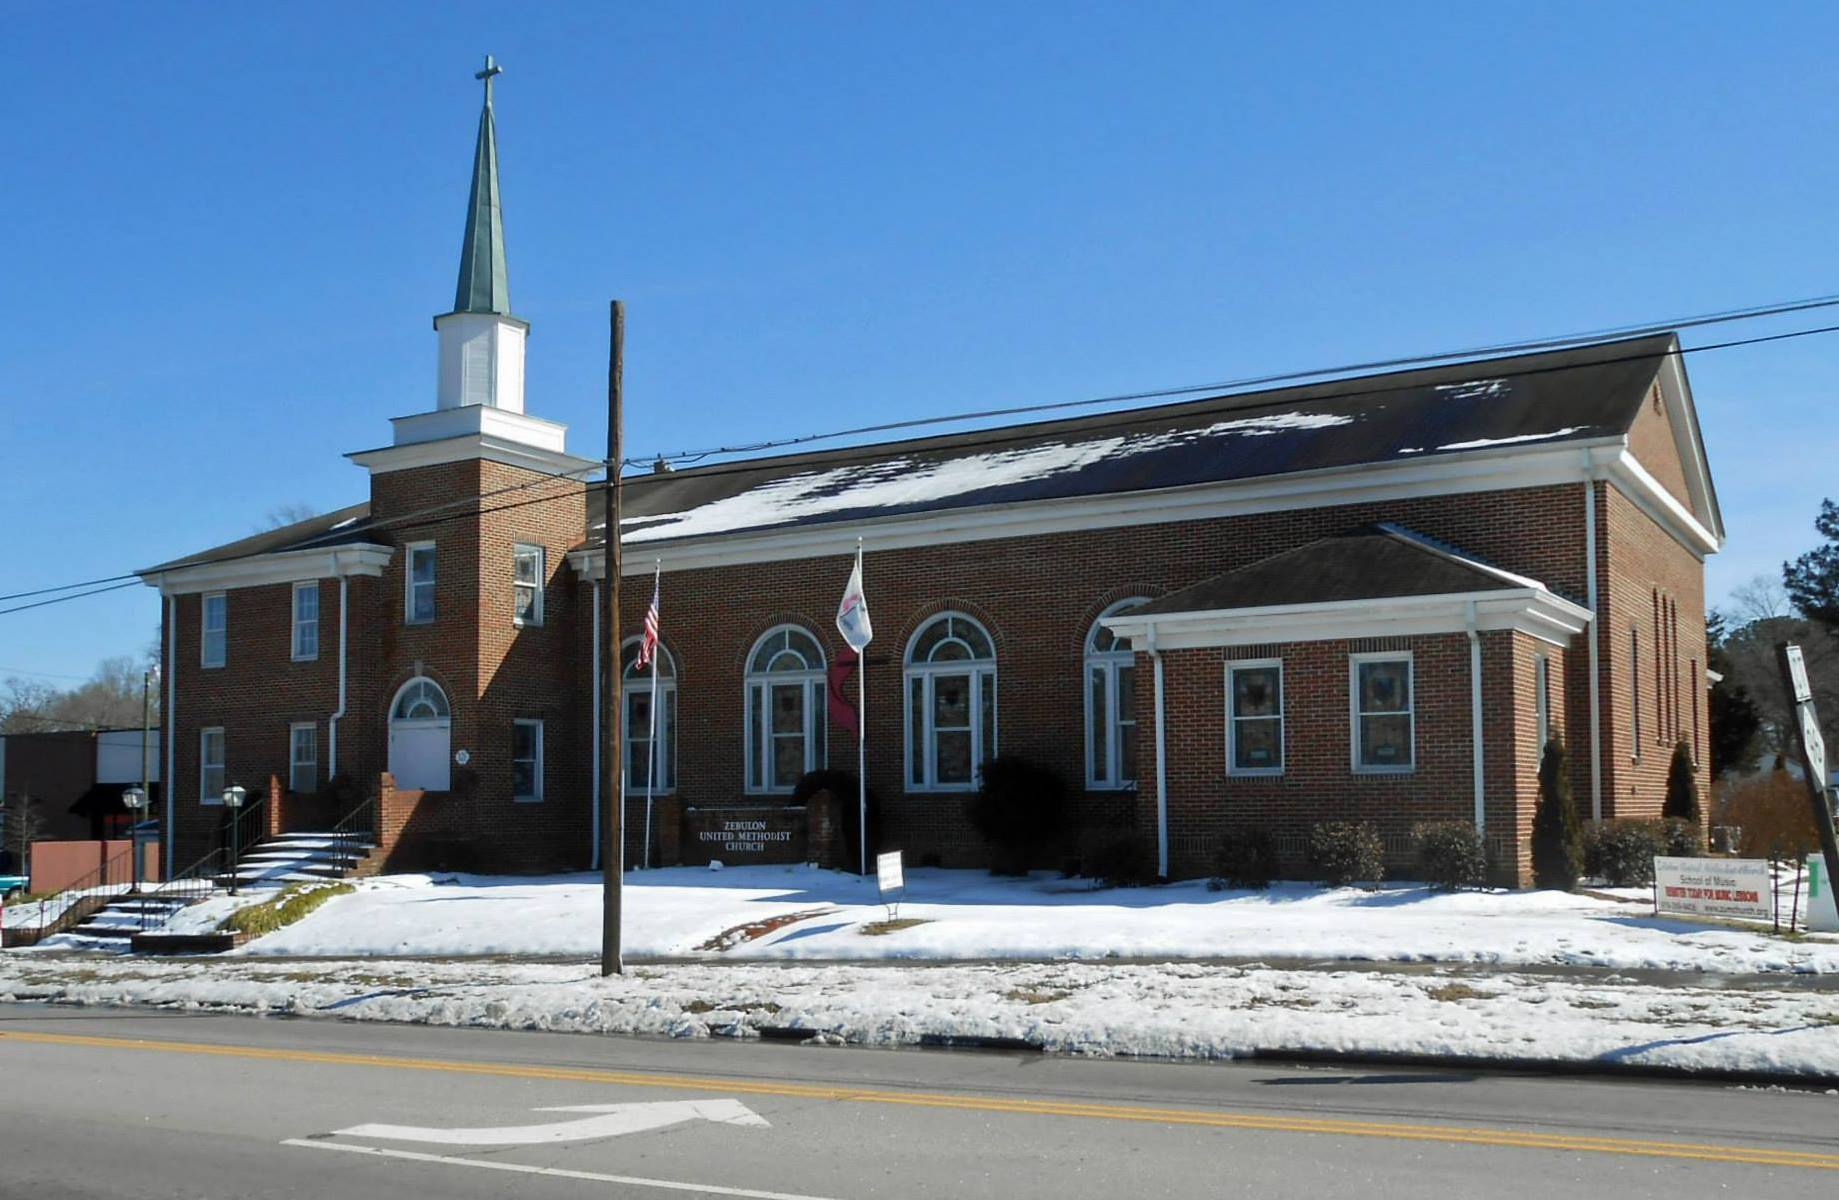 Zebulon United Methodist Church in Zebulon NC. Photo Source: ZebulonUMC Facebook.